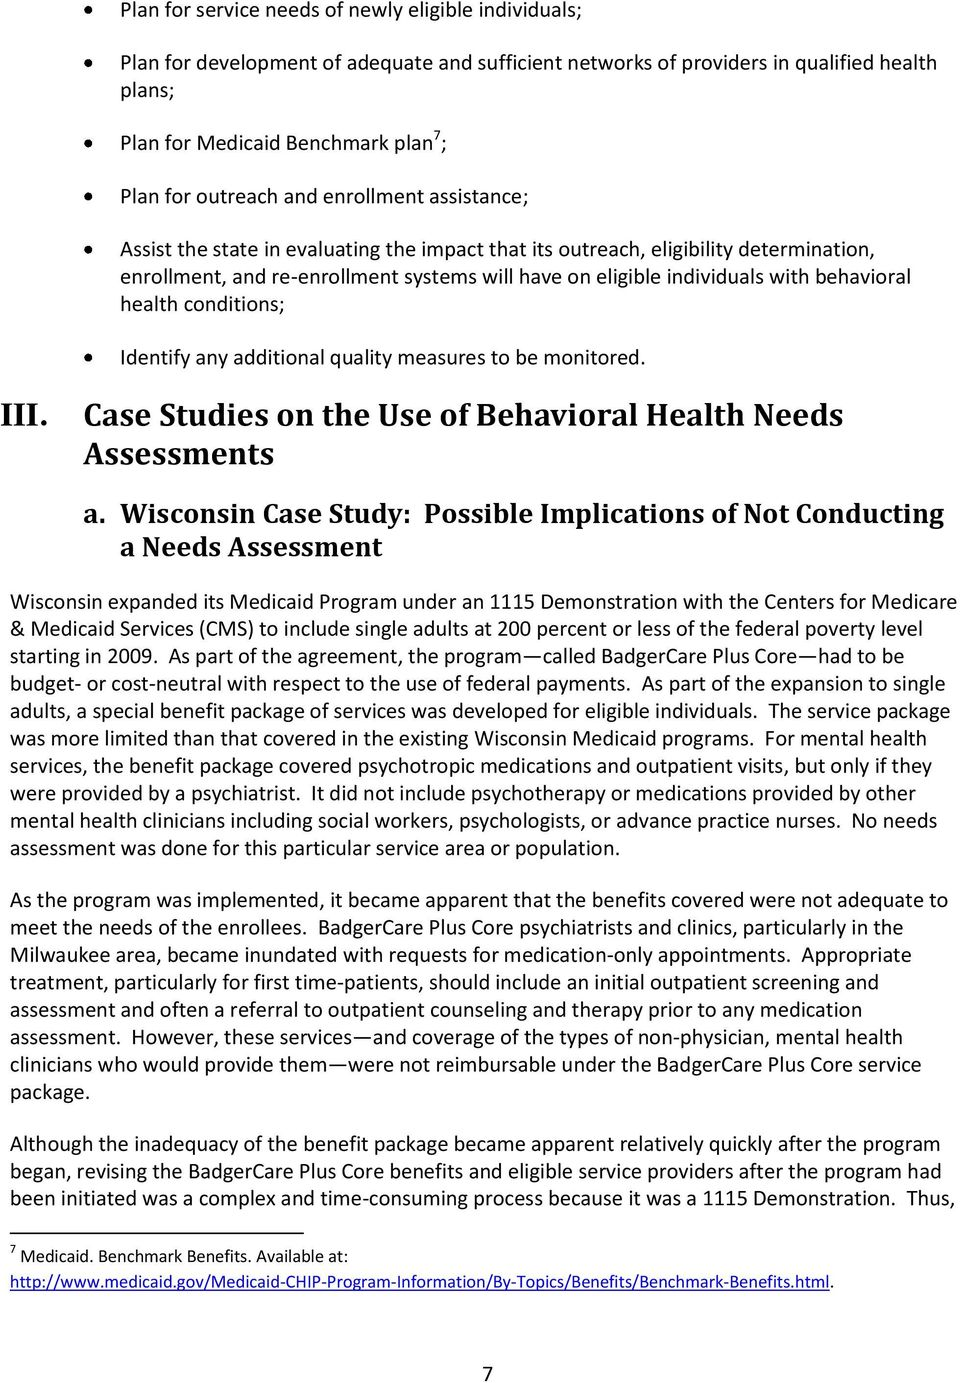 with behavioral health conditions; Identify any additional quality measures to be monitored. III. Case Studies on the Use of Behavioral Health Needs Assessments a.